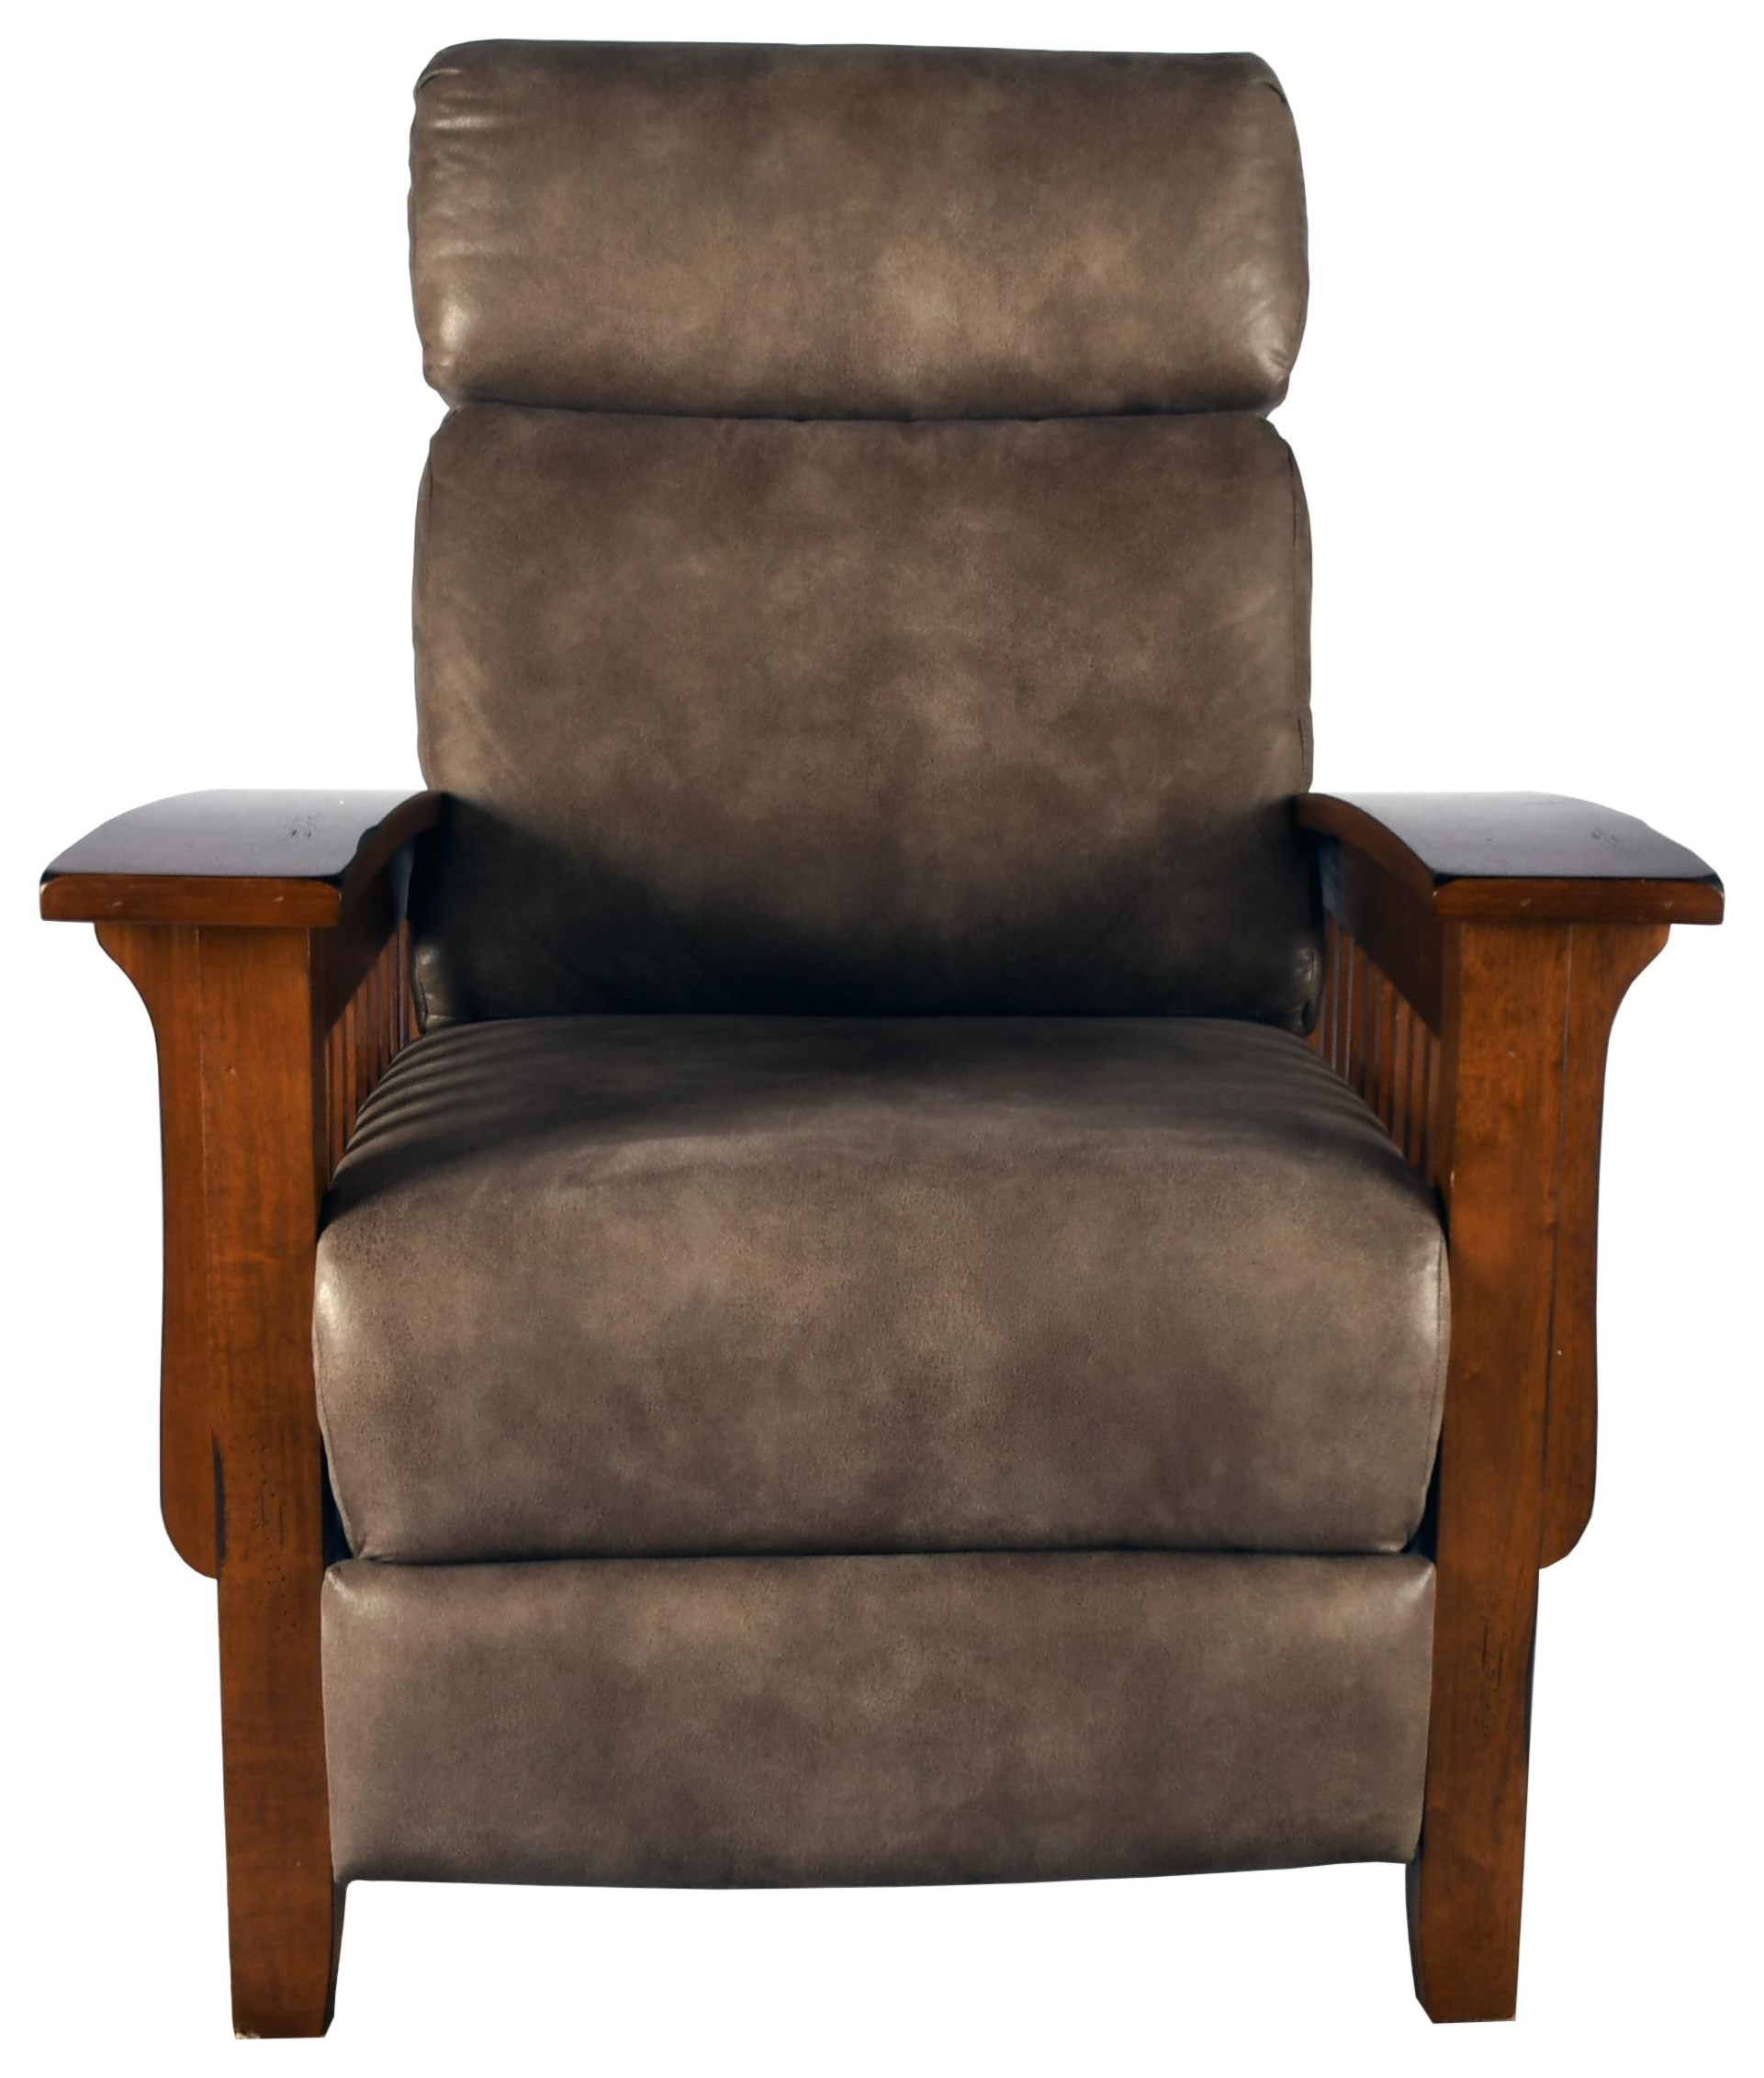 Tuscan Three-Way Recliner by Bravo Furniture at Bennett's Furniture and Mattresses